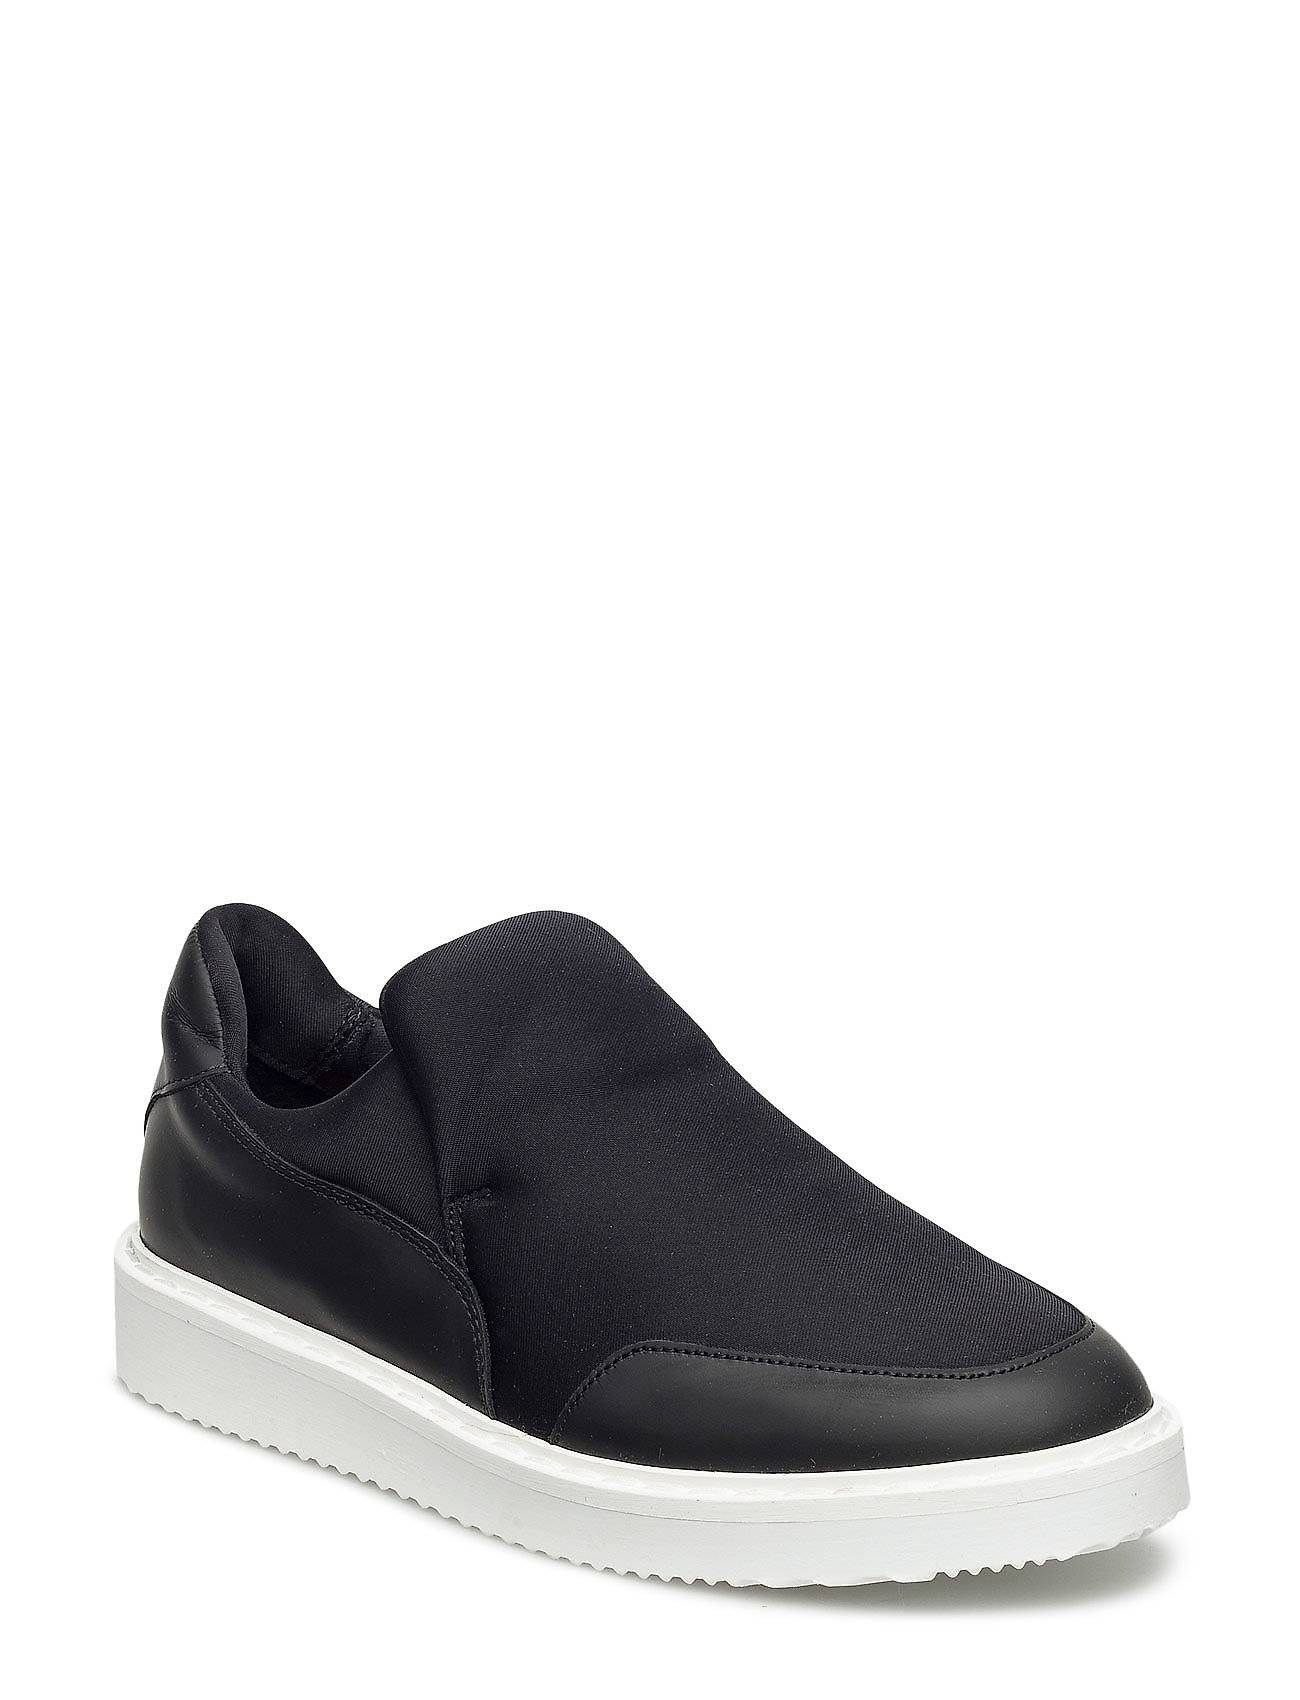 Selected Femme Sfsandra Slipon